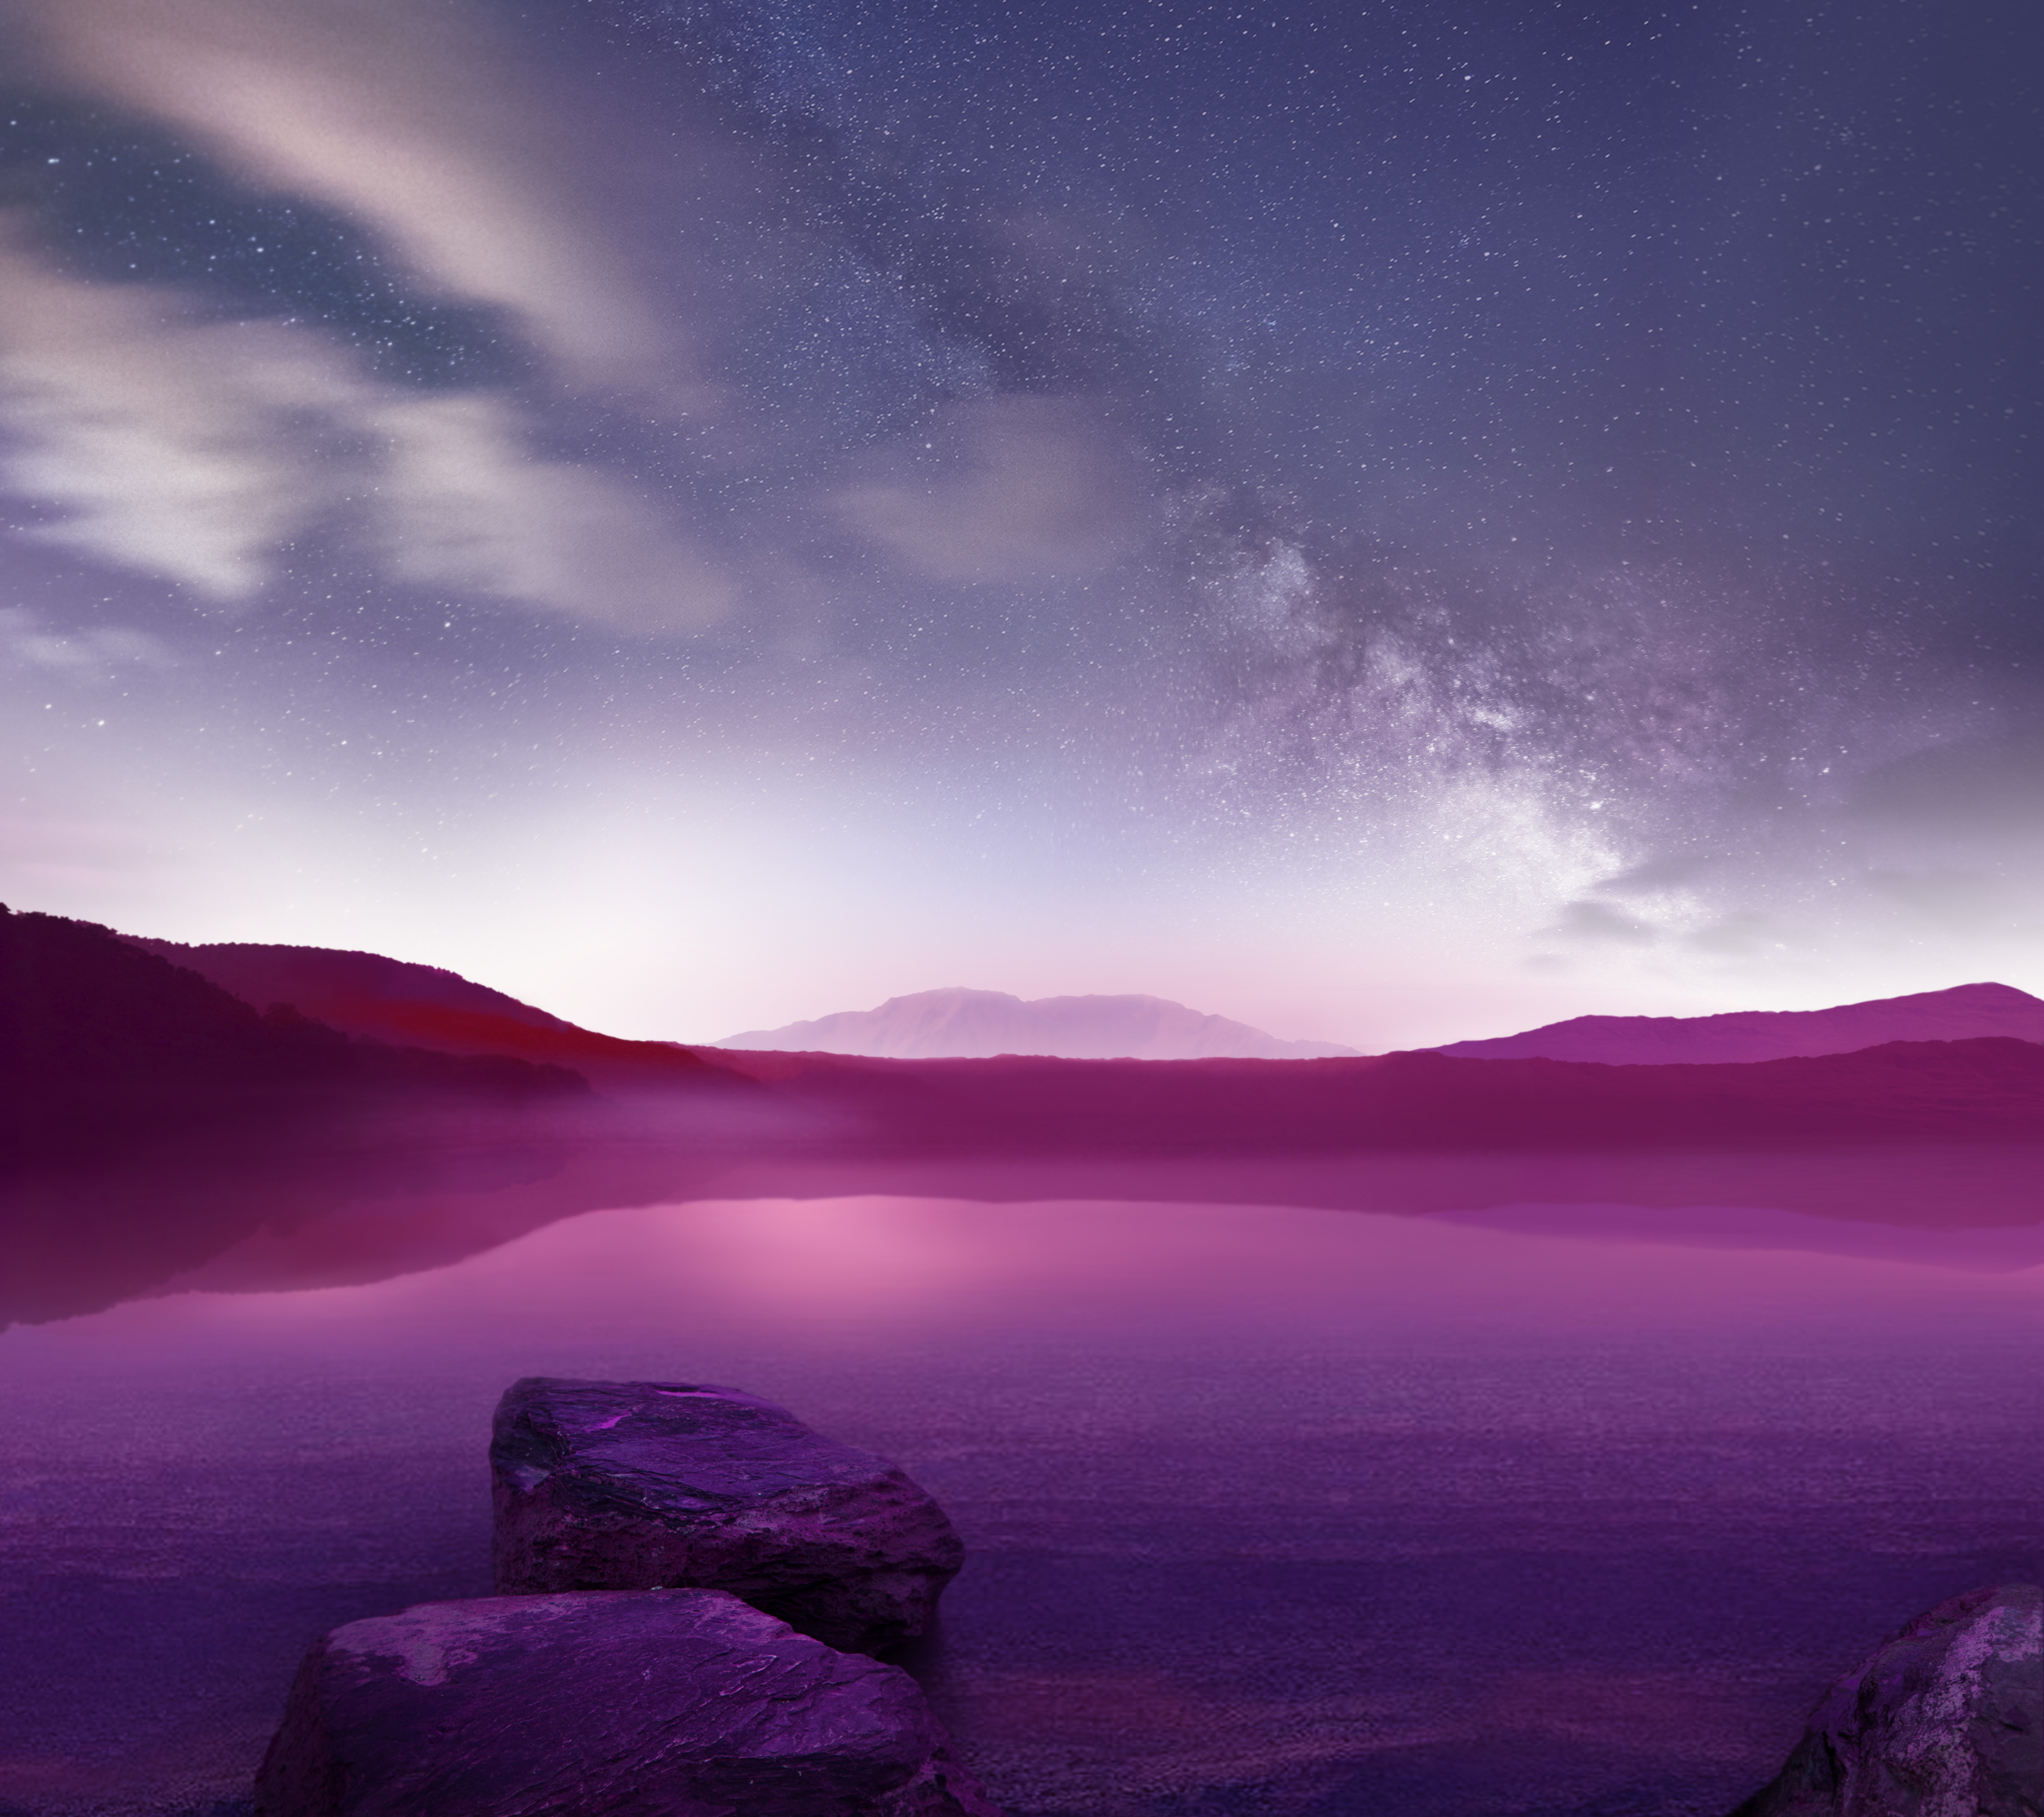 Lg G3 Wallpapers Now Available Download Them Here Talkandroidcom